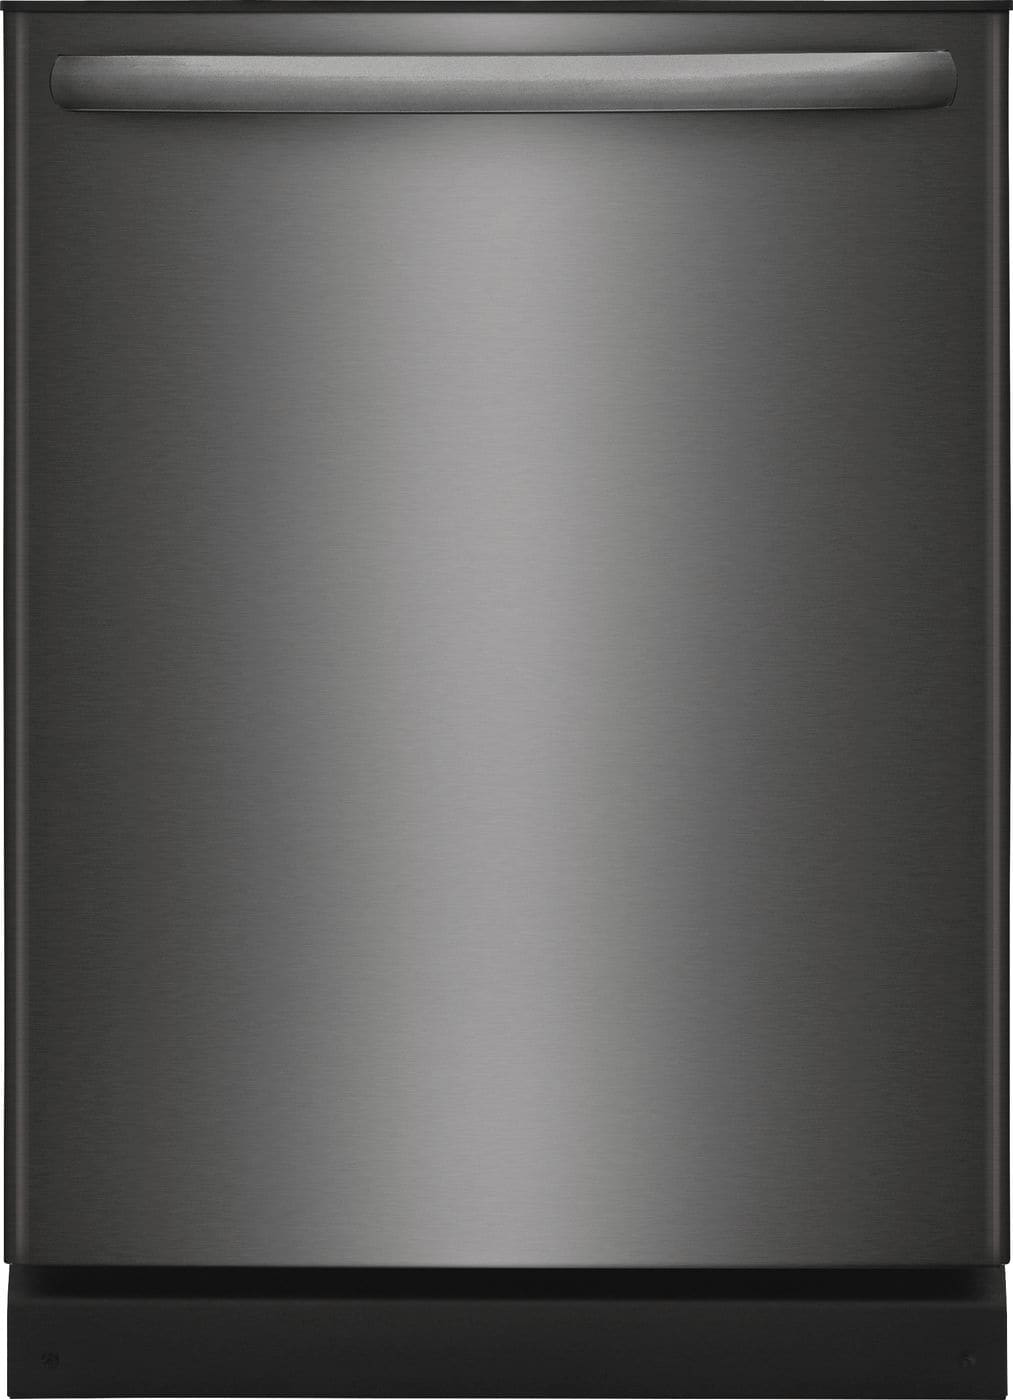 "Frigidaire 24"" Built-In Dishwasher"